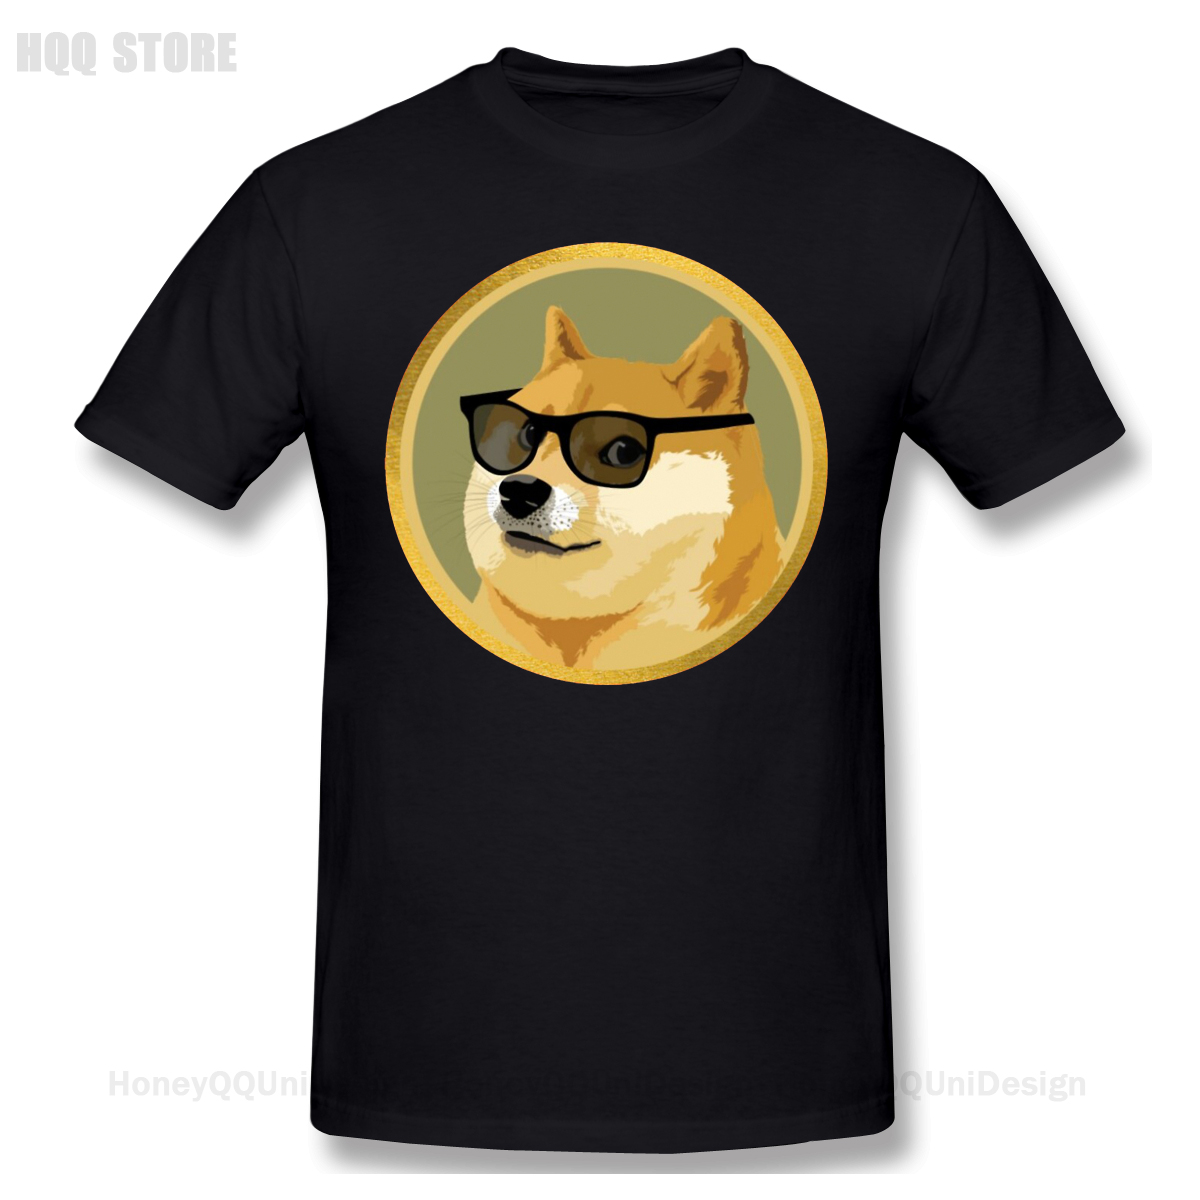 Men Clothing Dogecoin Shirt Doge Coin Funny Crypto Design Tshirt Bitcoin Apparel Fashion Short Sleeve For Adult Oversize T-shirt 1